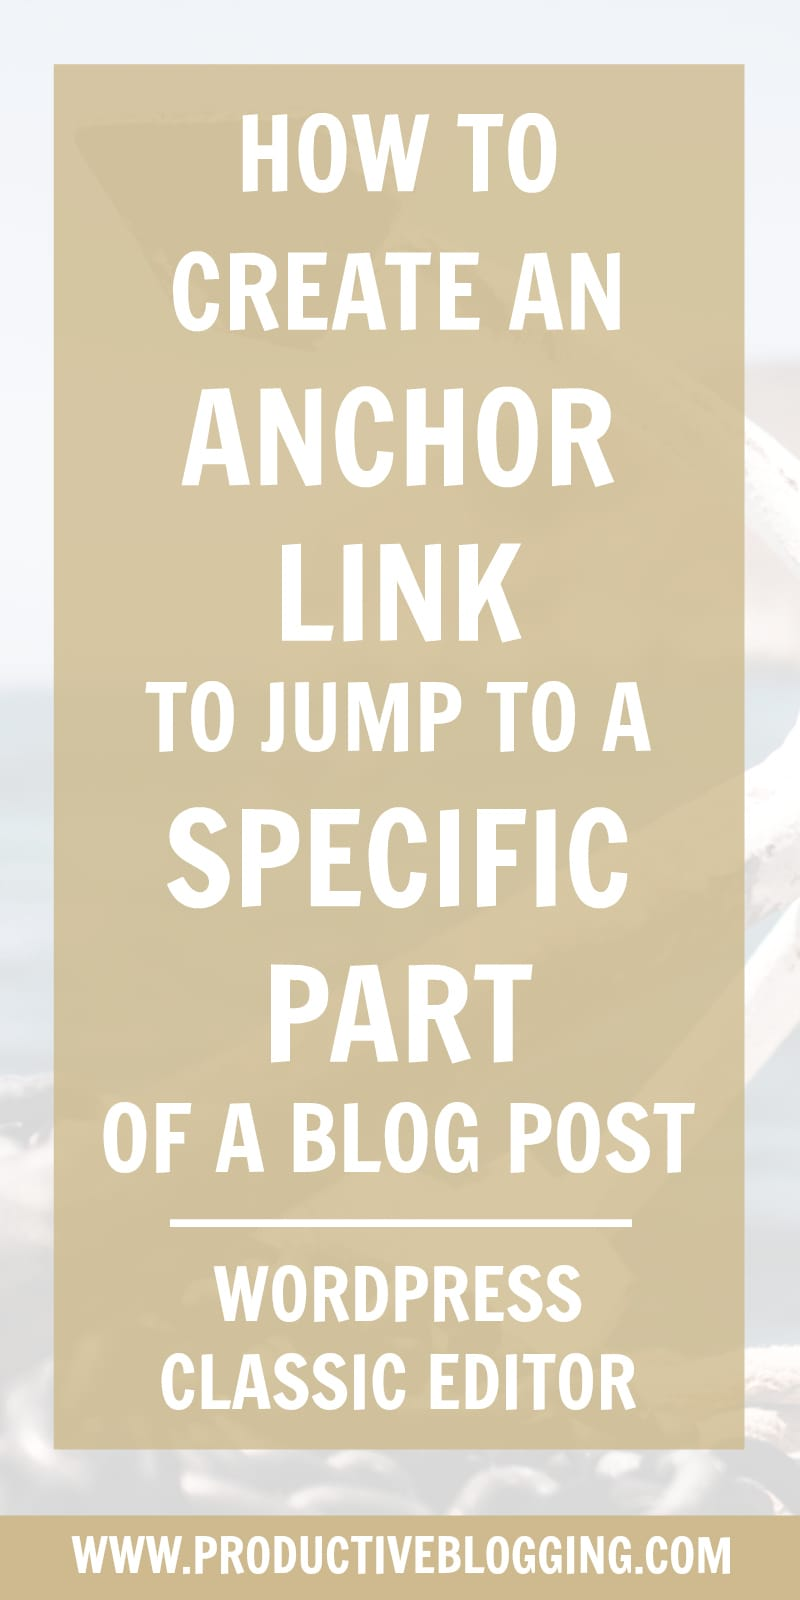 Want to create a link in a blog post that will allow your reader to 'jump' to a specific part of your blog post? It's really easy to do with the WordPress Classic Editor. Here's how… #anchorlink #jumplink #linkjump #wordpress #wordpressclassiceditor #classiceditorplugin #blogpostindex #blogpost #bloggingbasics #blogging #bloggers #bloggingtips #productiveblogging #blogsmarternotharder